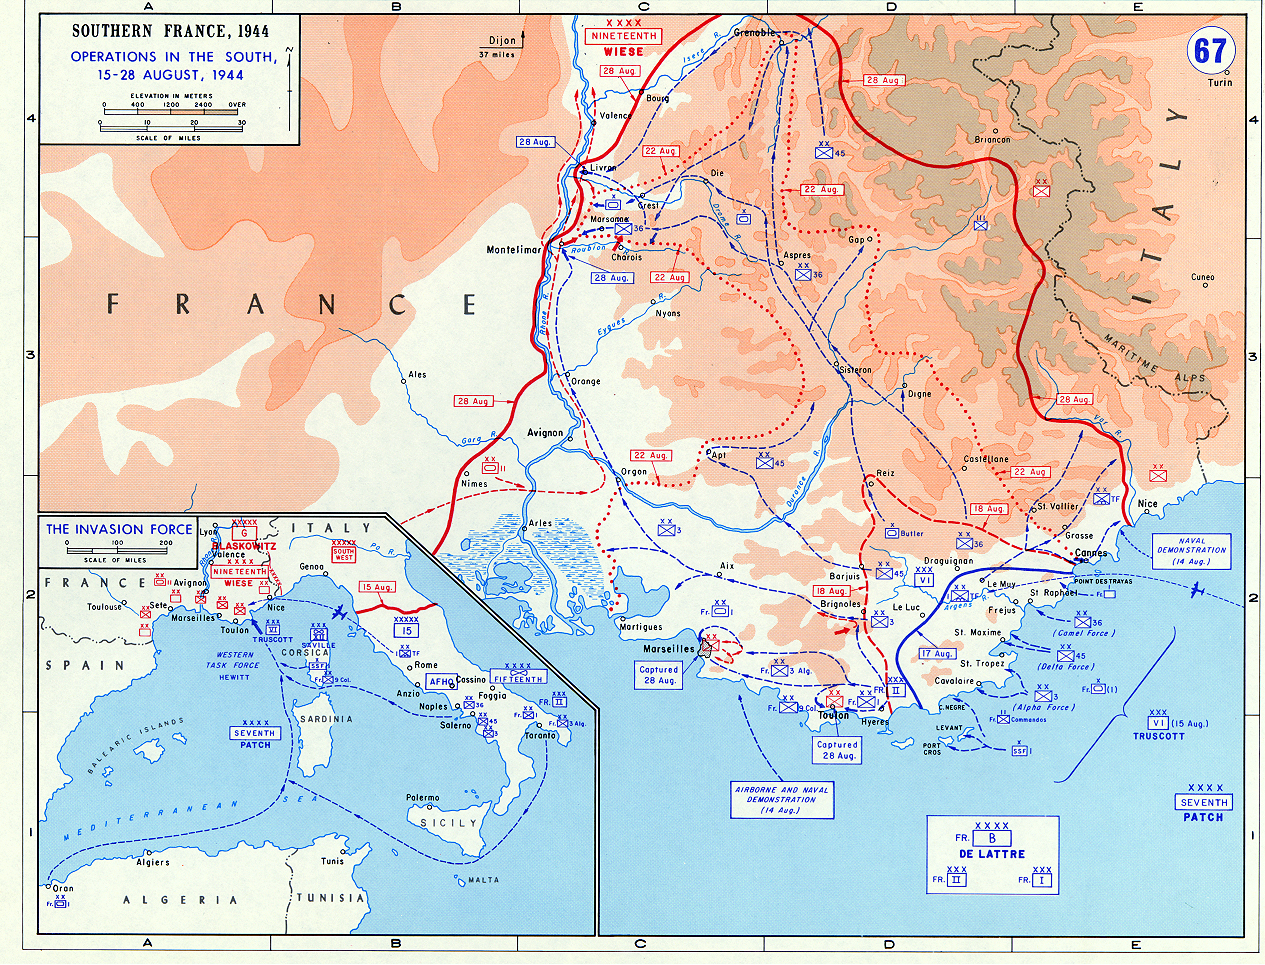 map of allied operations in southern france august 1944